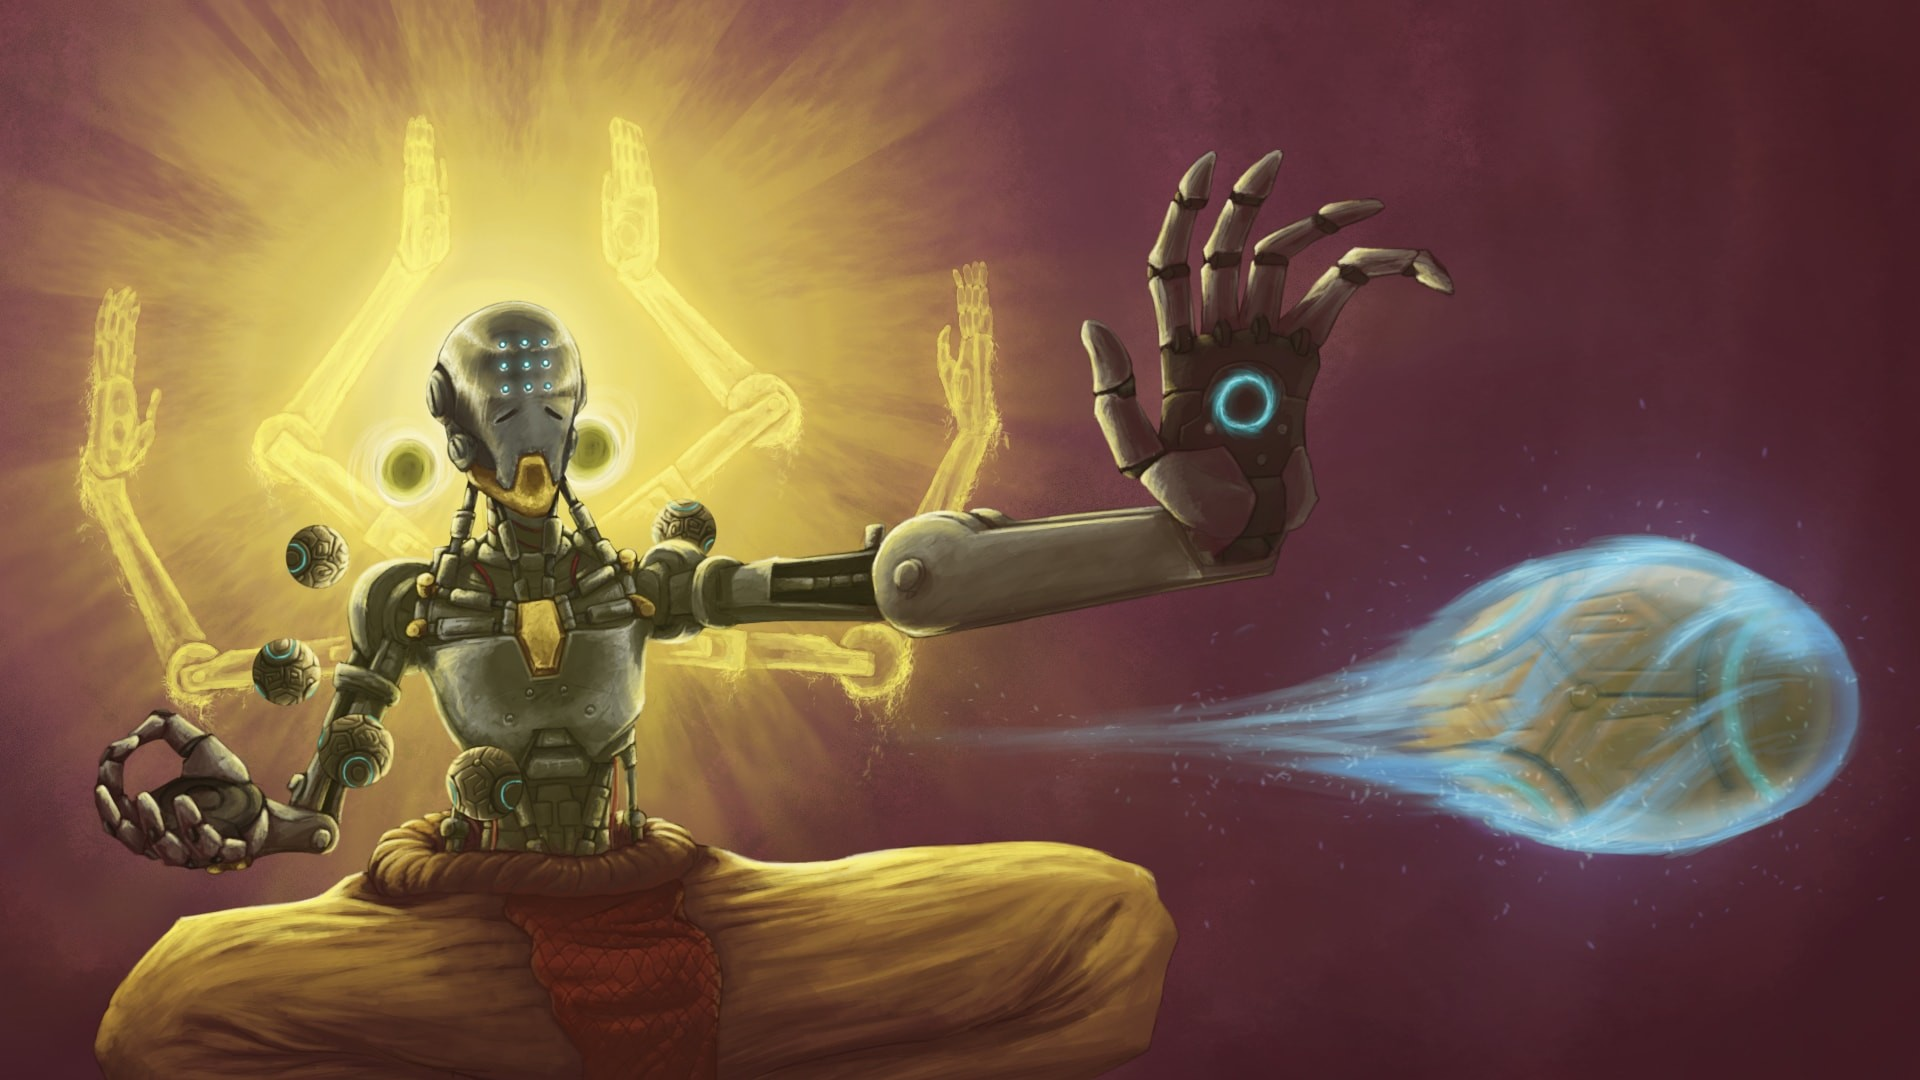 1920x1080 48 Zenyatta (Overwatch) HD Wallpapers | Backgrounds - Wallpaper .